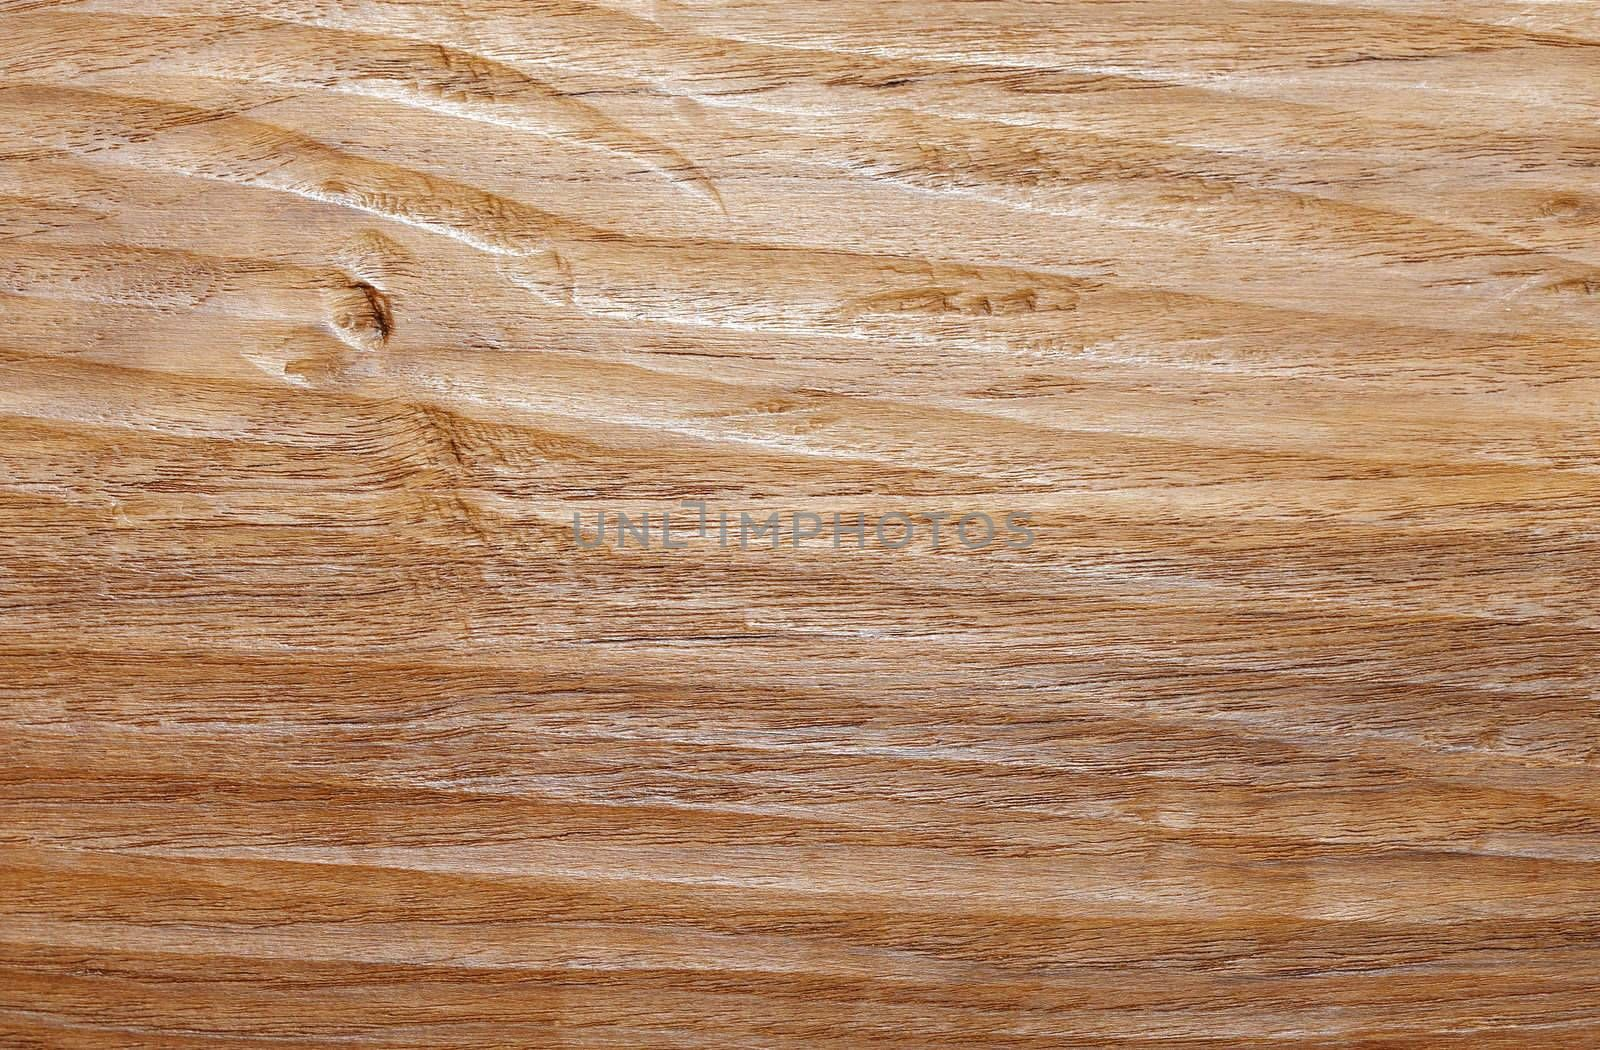 texture of surface of a wooden plank